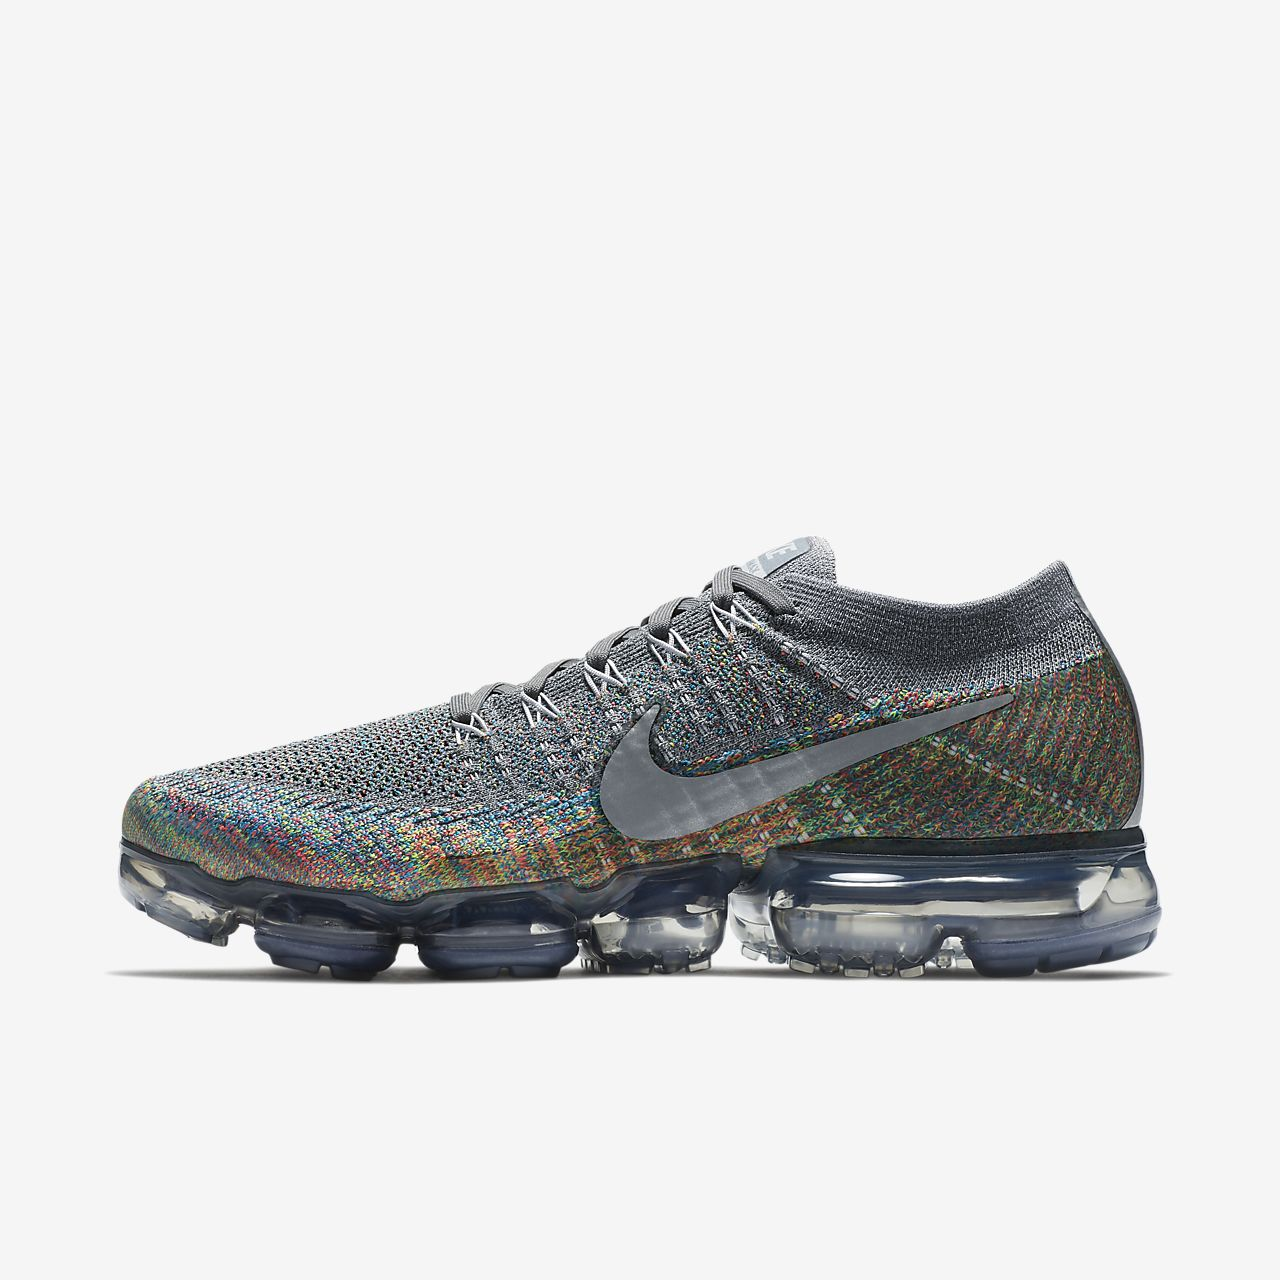 543e8546ee7af Nike Air VaporMax Flyknit Men s Shoe. Nike.com GB